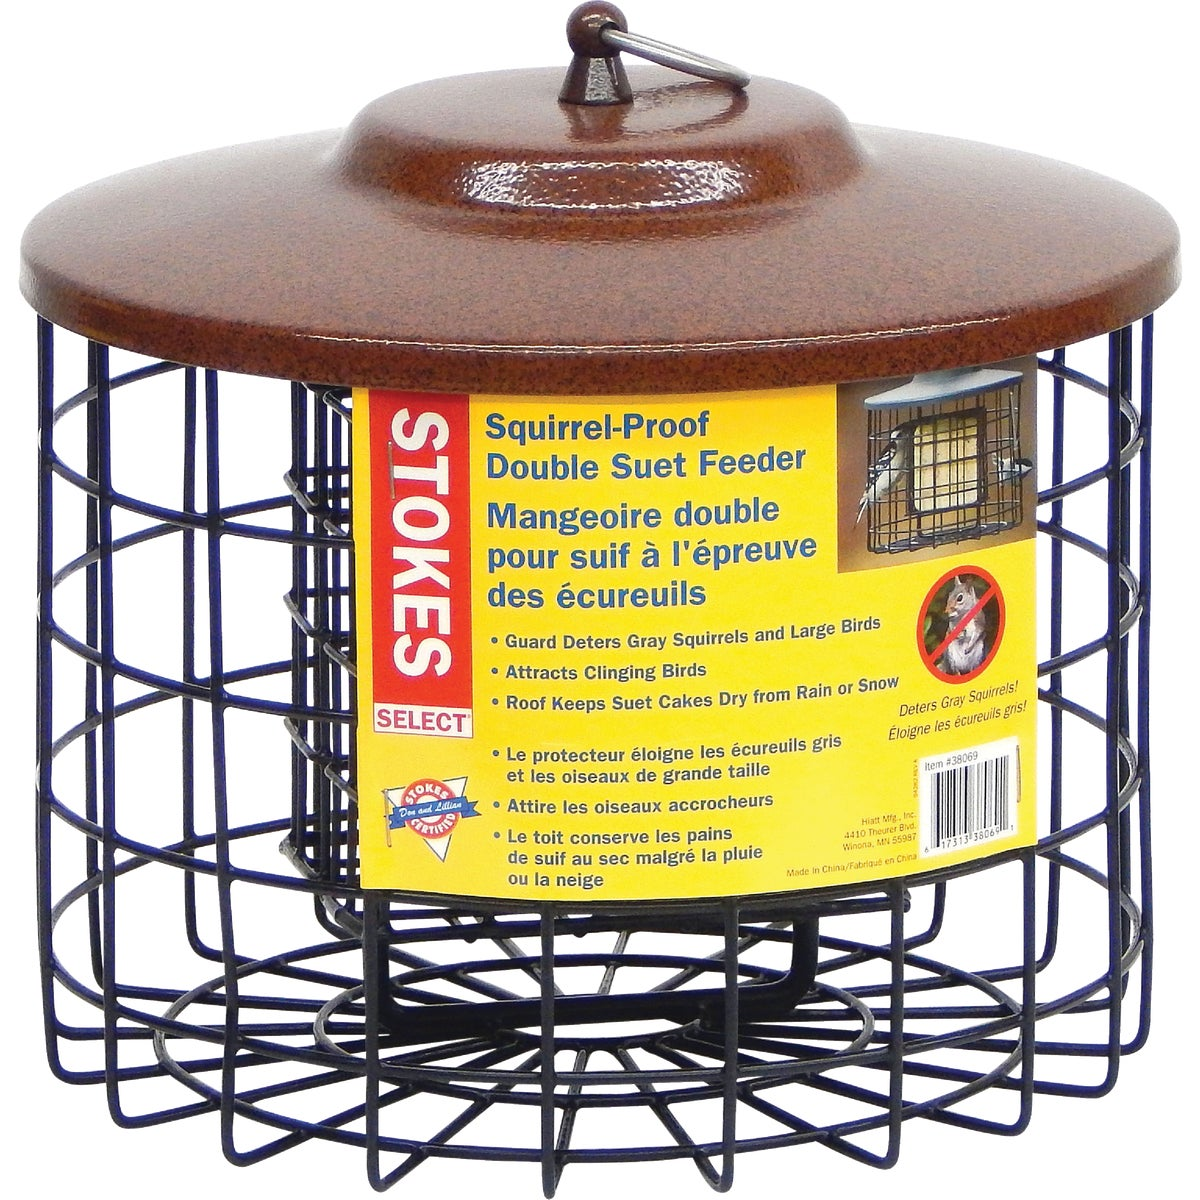 SQRL PROOF SUET FEEDER - 38069 by Hiatt Mfg